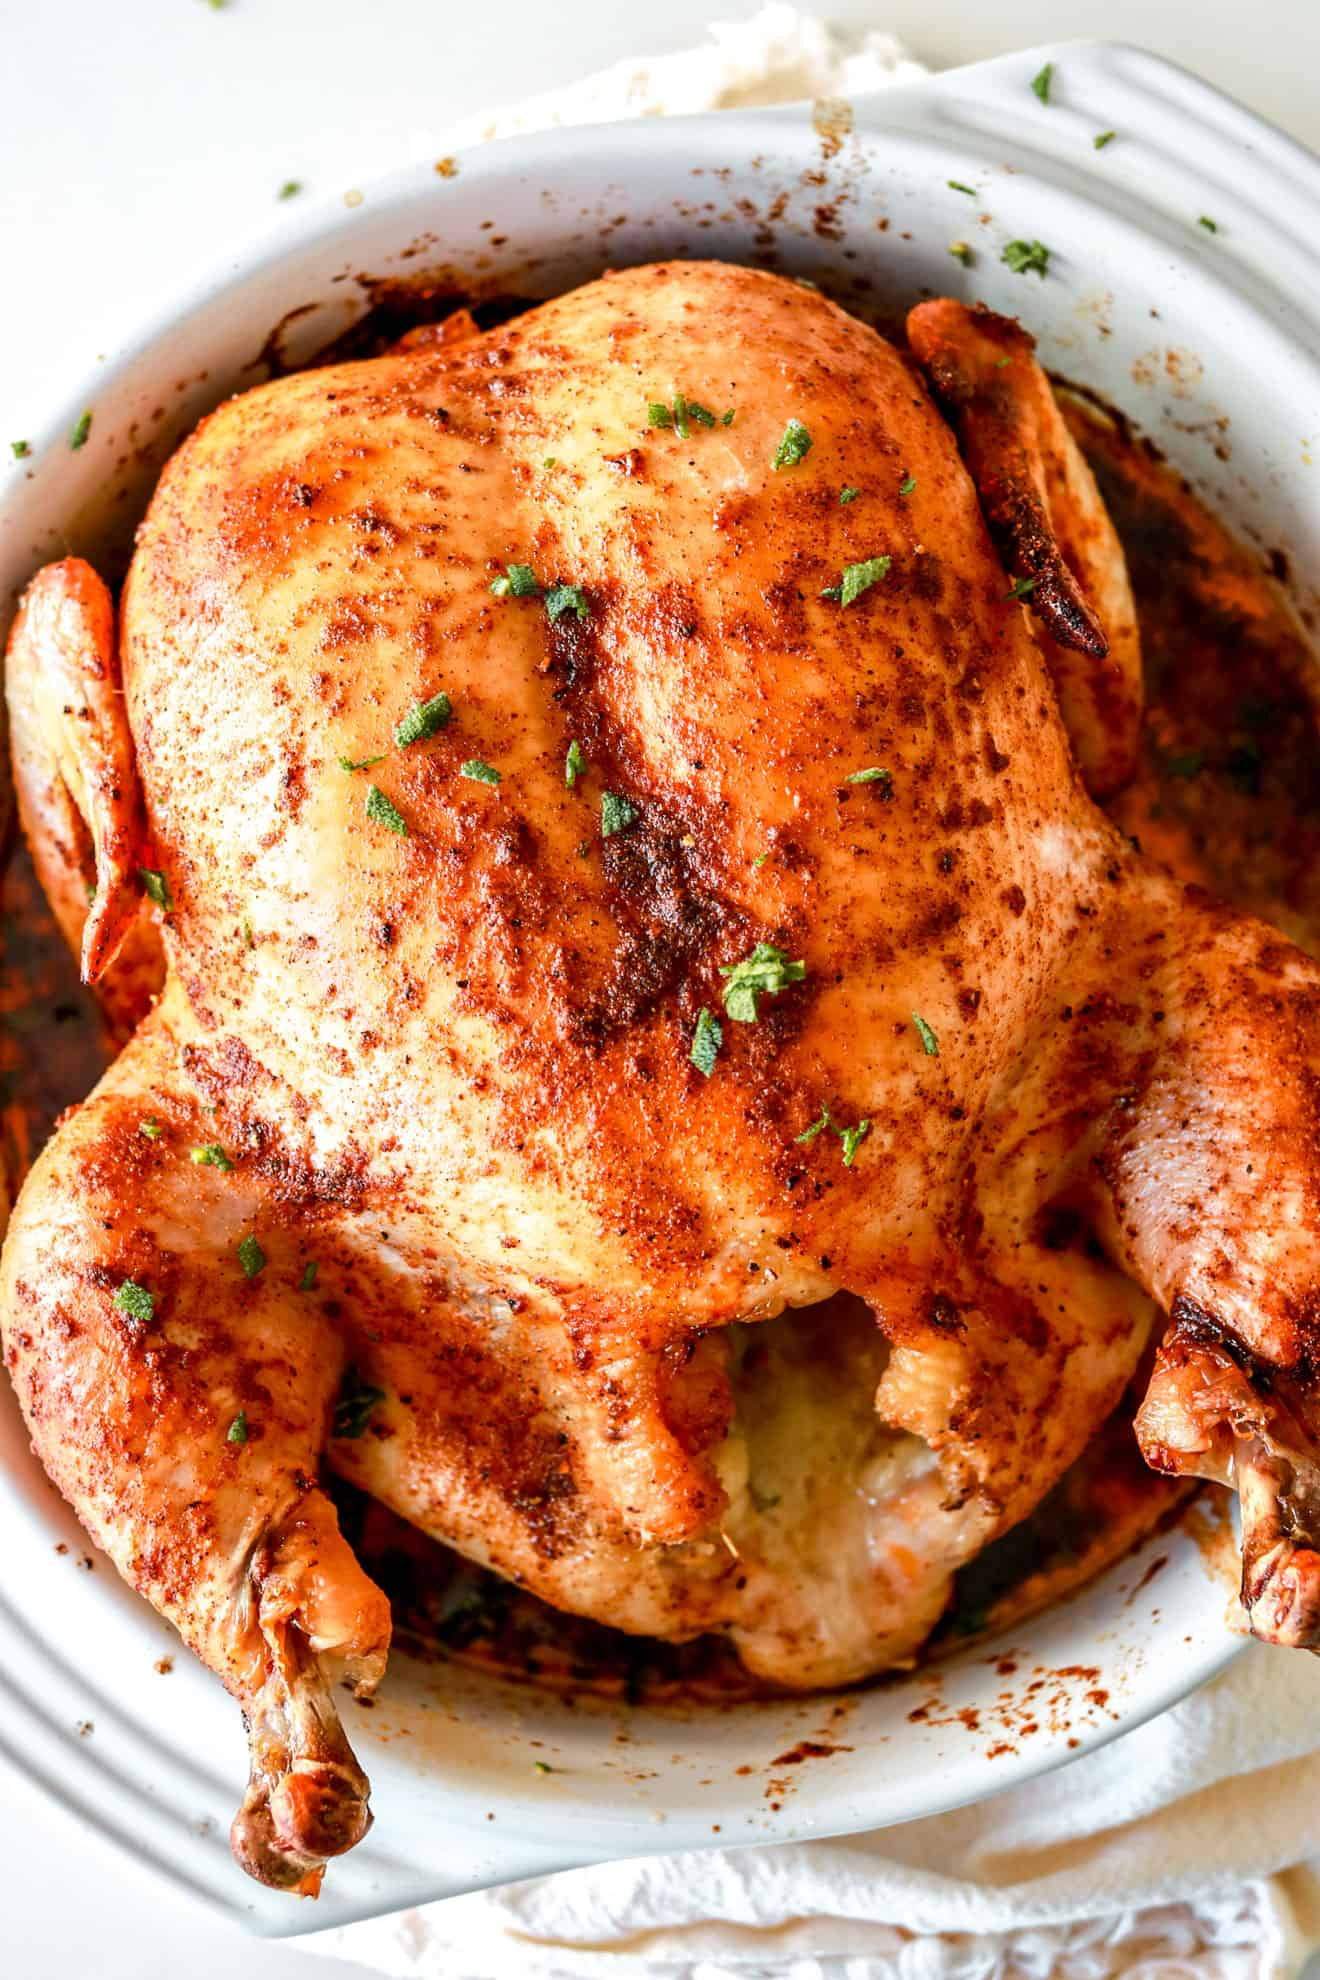 baking dish with roasted whole chicken